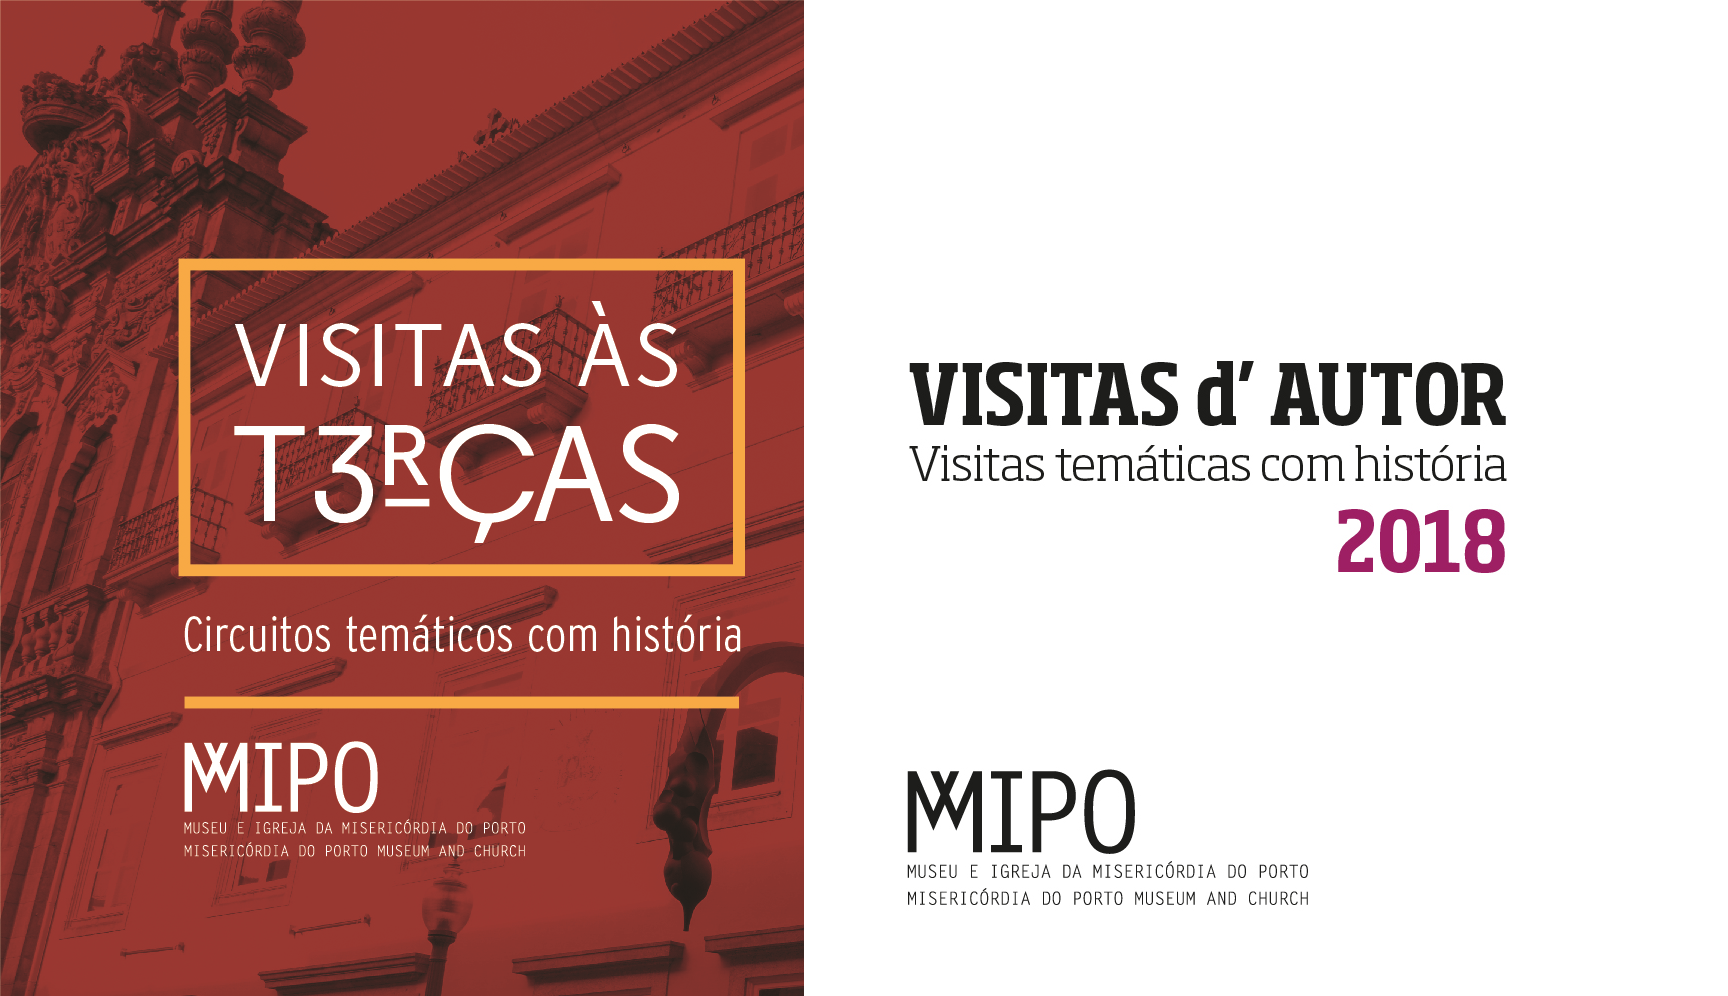 https://www.scmp.pt/assets/misc/img/noticias/2018/2018%2003%20Visitas%20MMIPO/visiter%C3%A7as%2Bautor.png